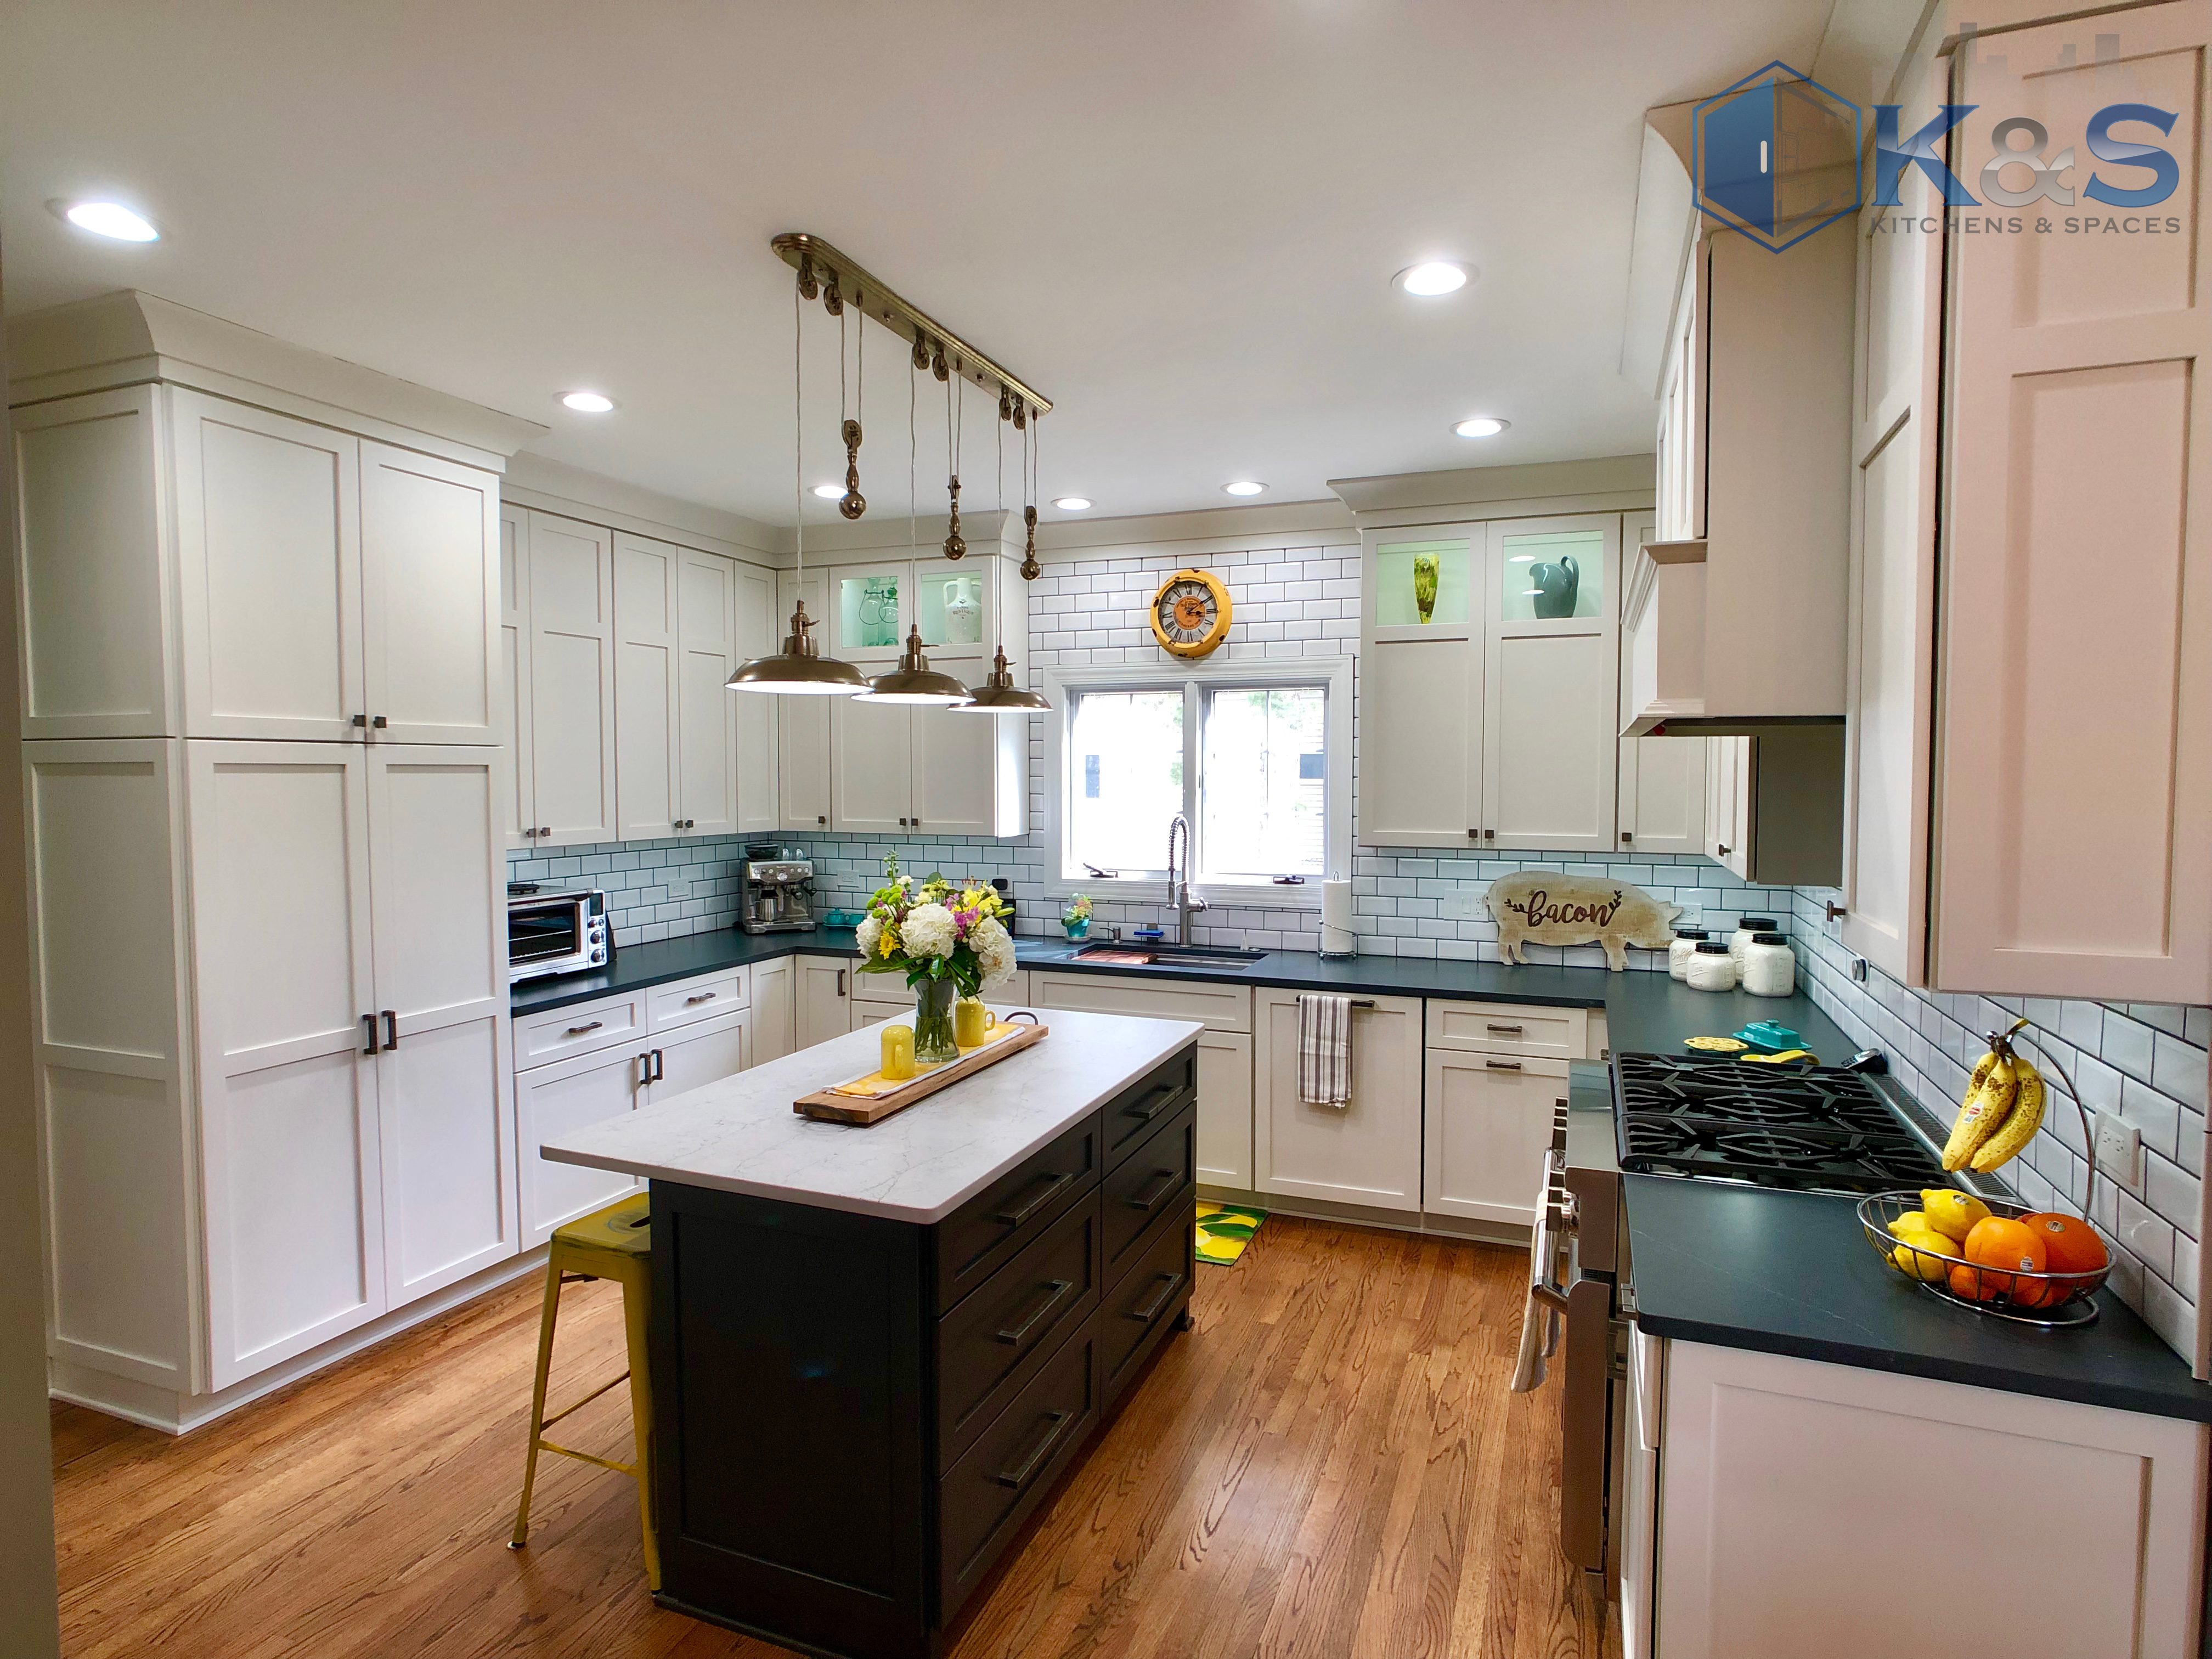 xComplete kitchen remodeling project in Downers Grove IL